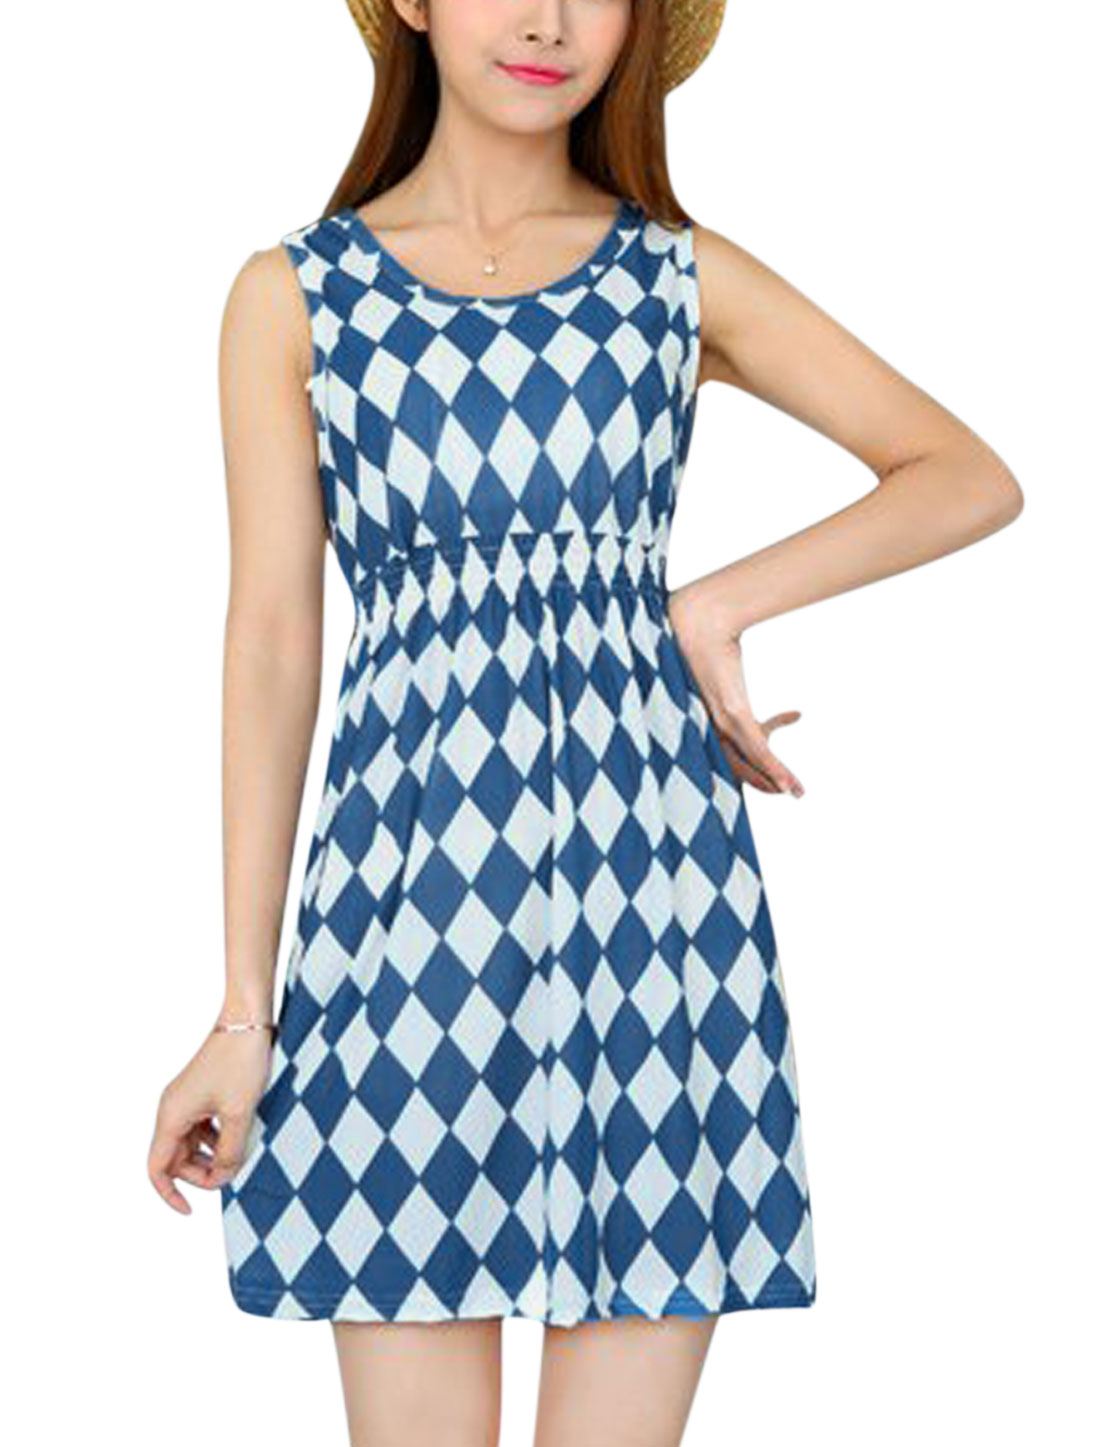 Ladies Argyle Pattern Round Neck Sleeveless A Line Mini Sundress Blue White XS